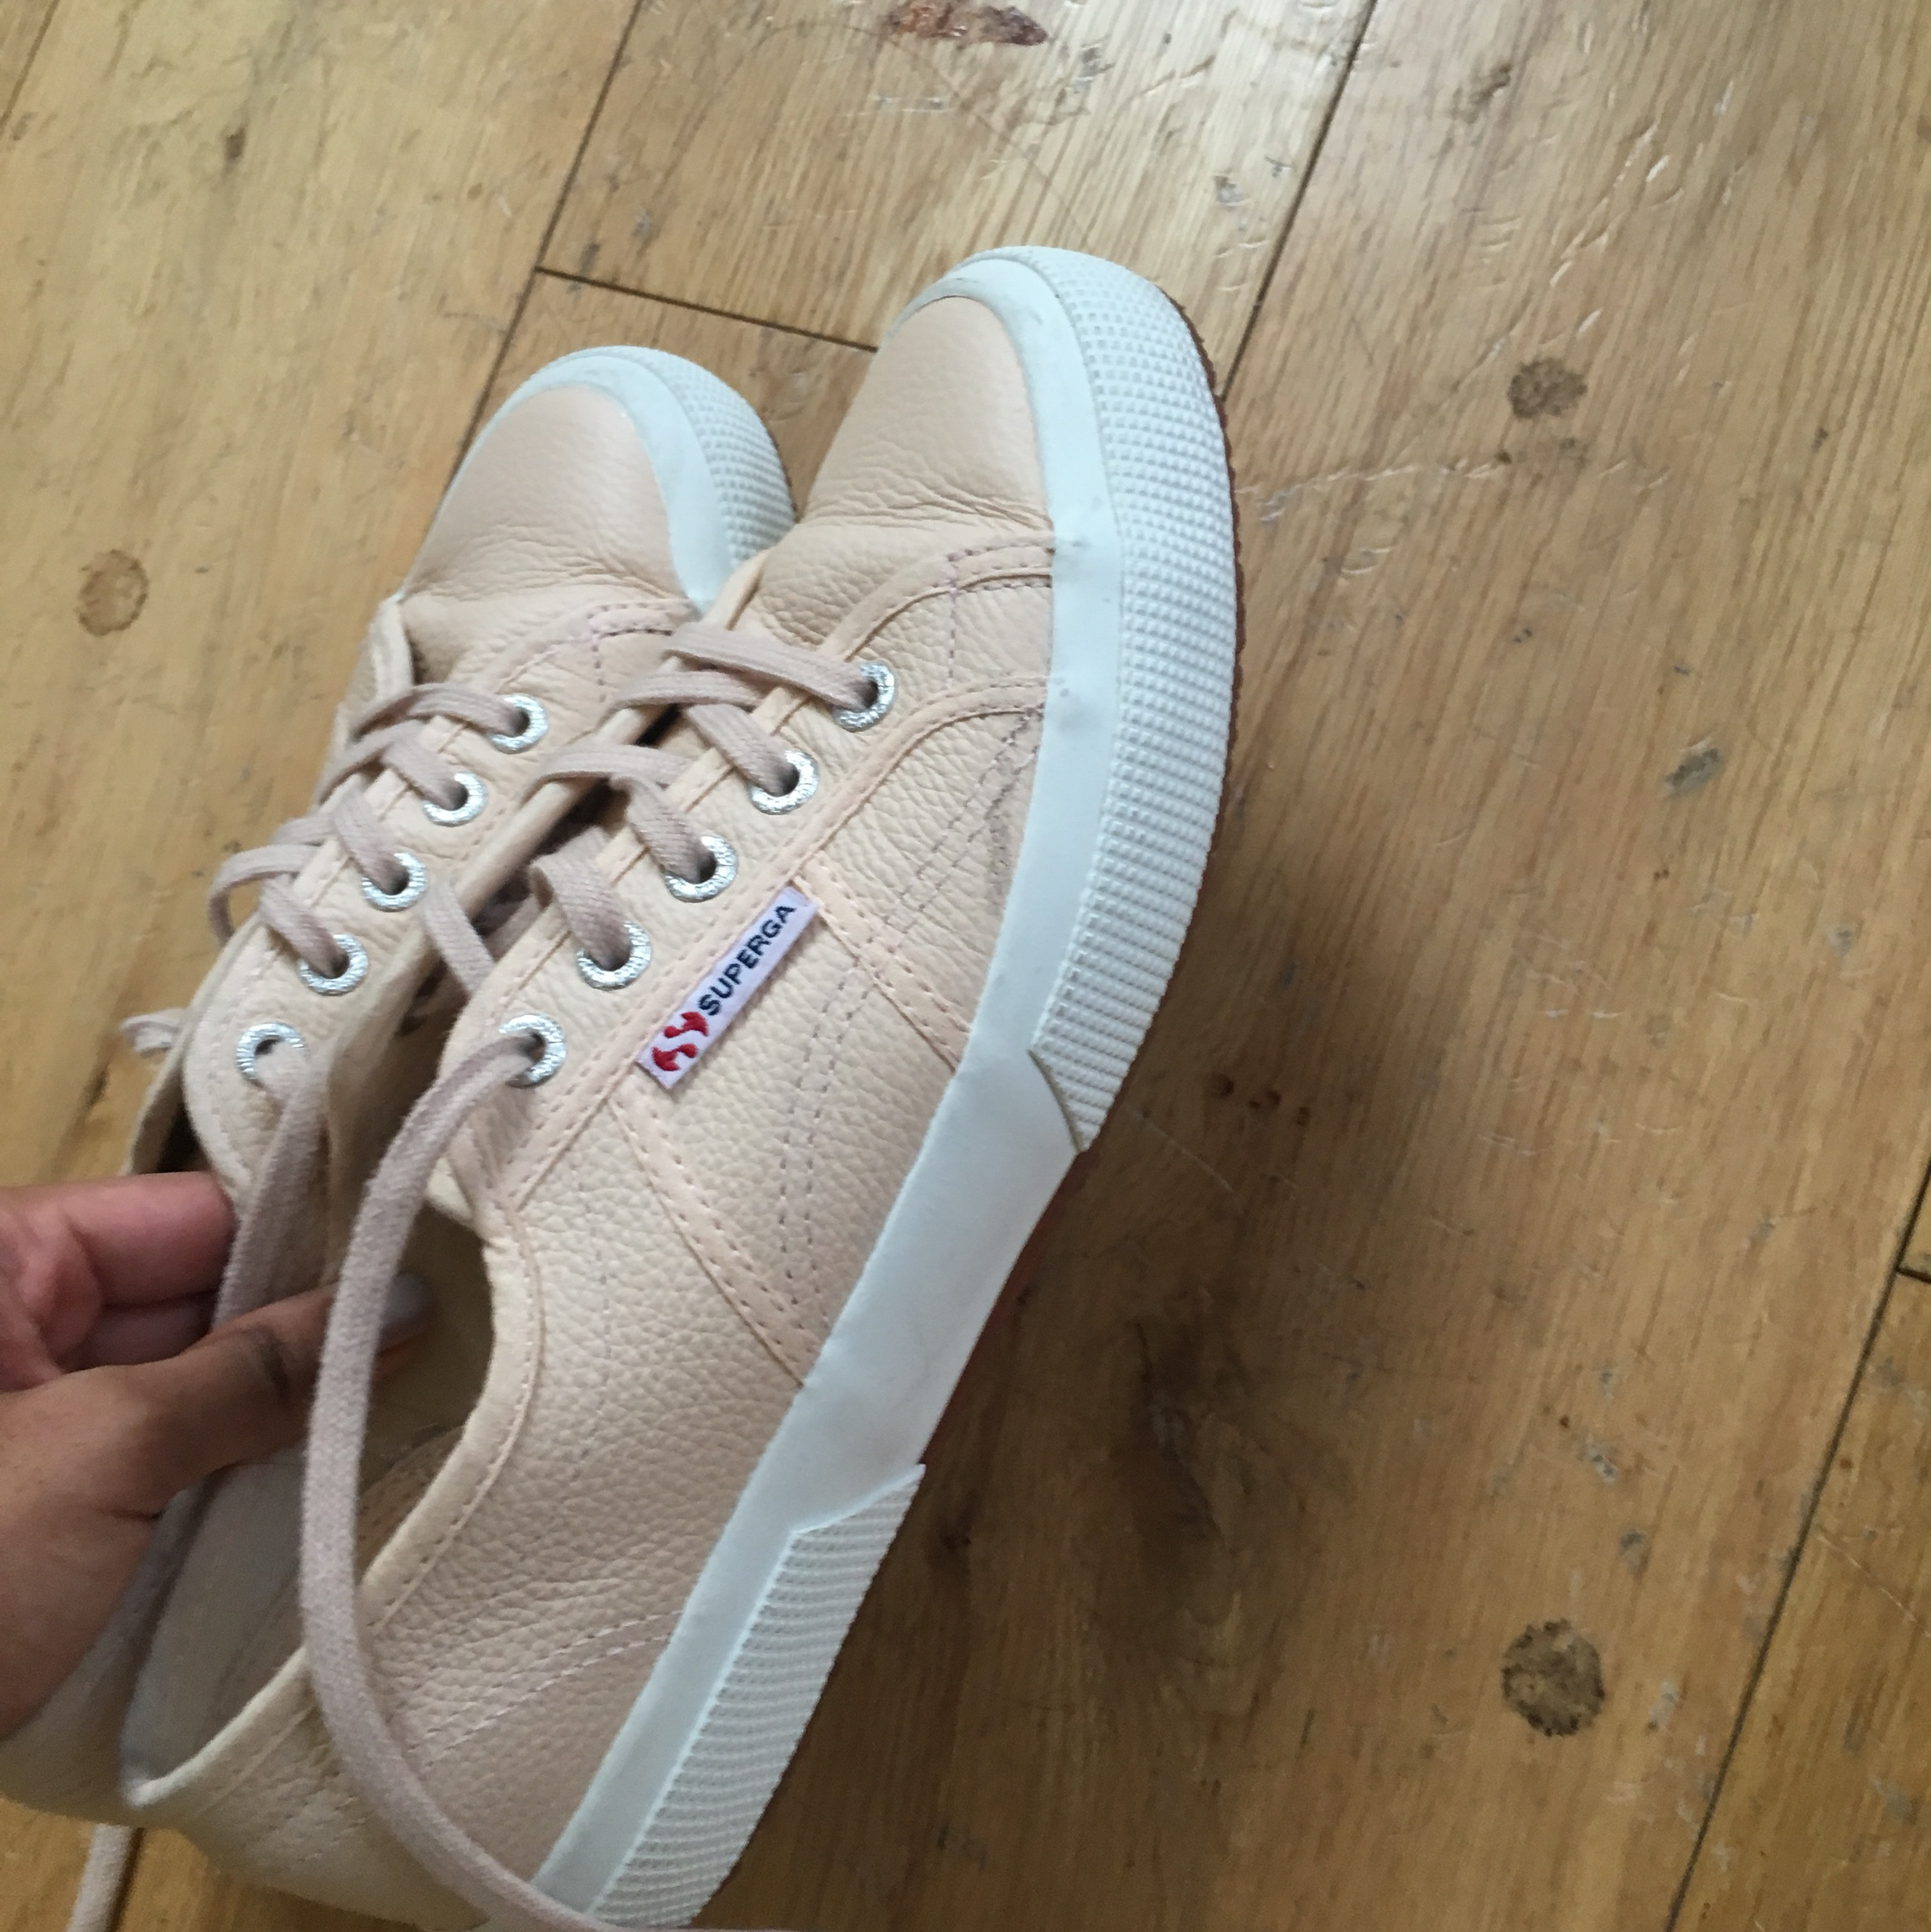 Superga pink leather trainers. Very